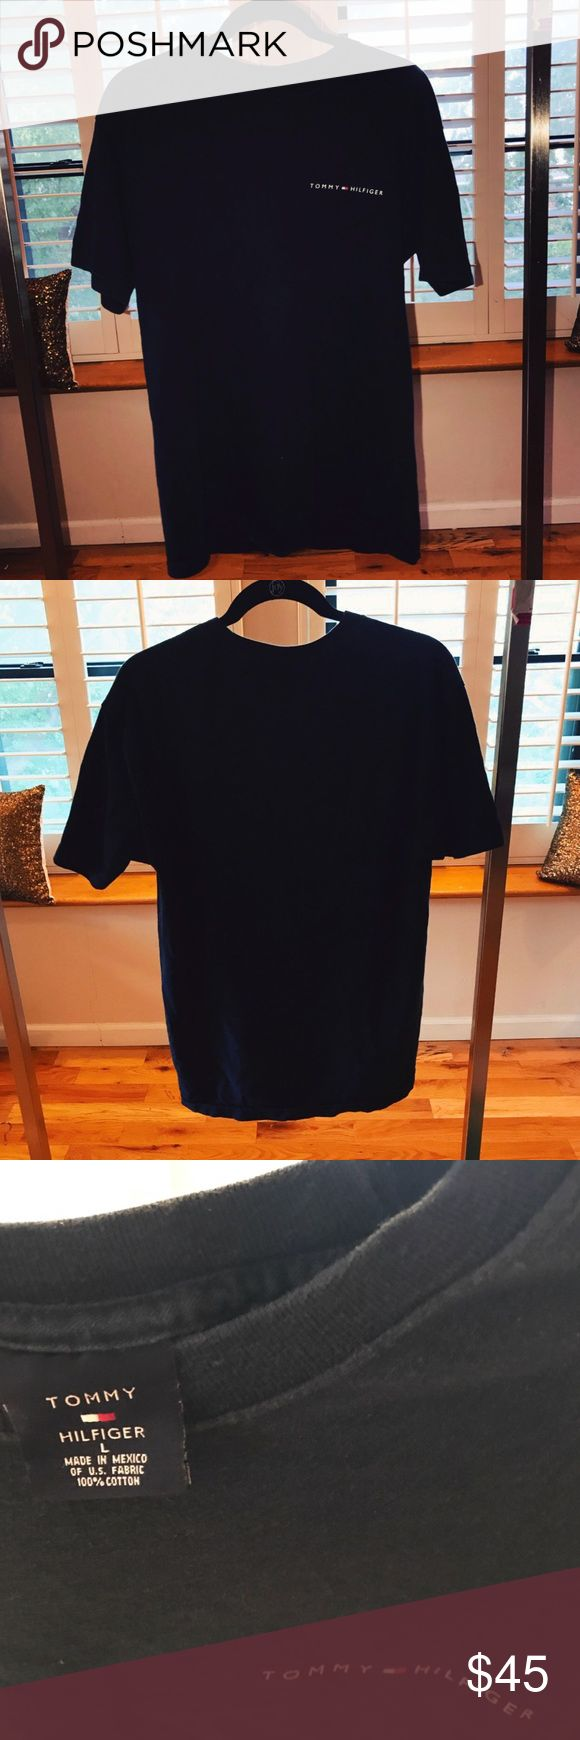 Vintage Navy Tommy Hilfiger T-shirt Worn a little in the neck but not noticeable.. but everywhere else on the tshirt is in great condition Tommy Hilfiger Tops Tees - Short Sleeve